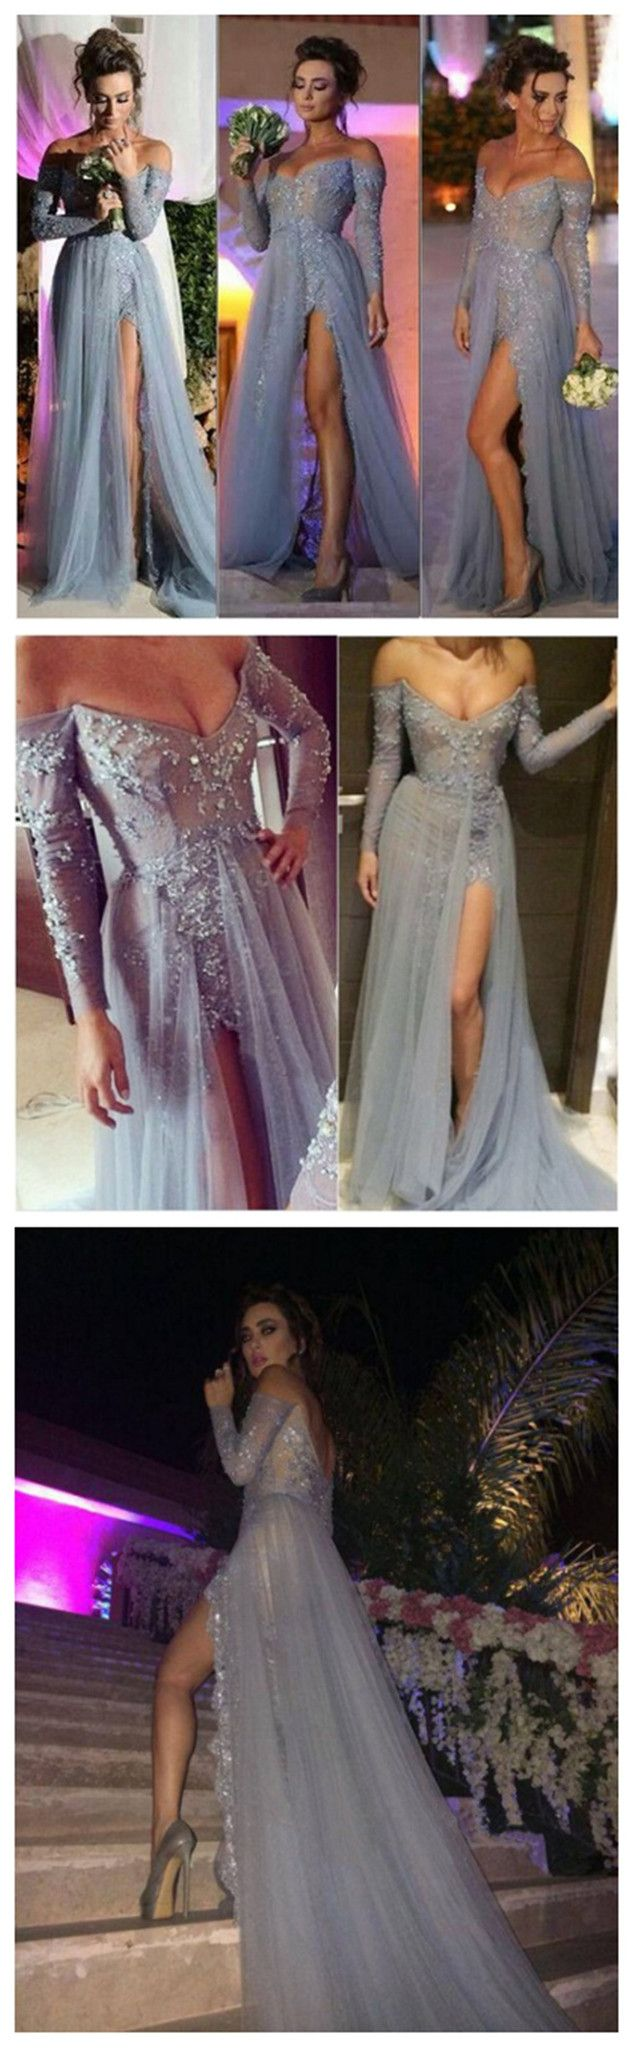 Long Gray Lace Off Shoulder V-neck Side Slit Sexy Popular Prom Dresses ,Evening Occasion Dresses, PD0021 The dress is fully lined, 4 bones in the bodice, chest pad in the bust, lace up back or zipper